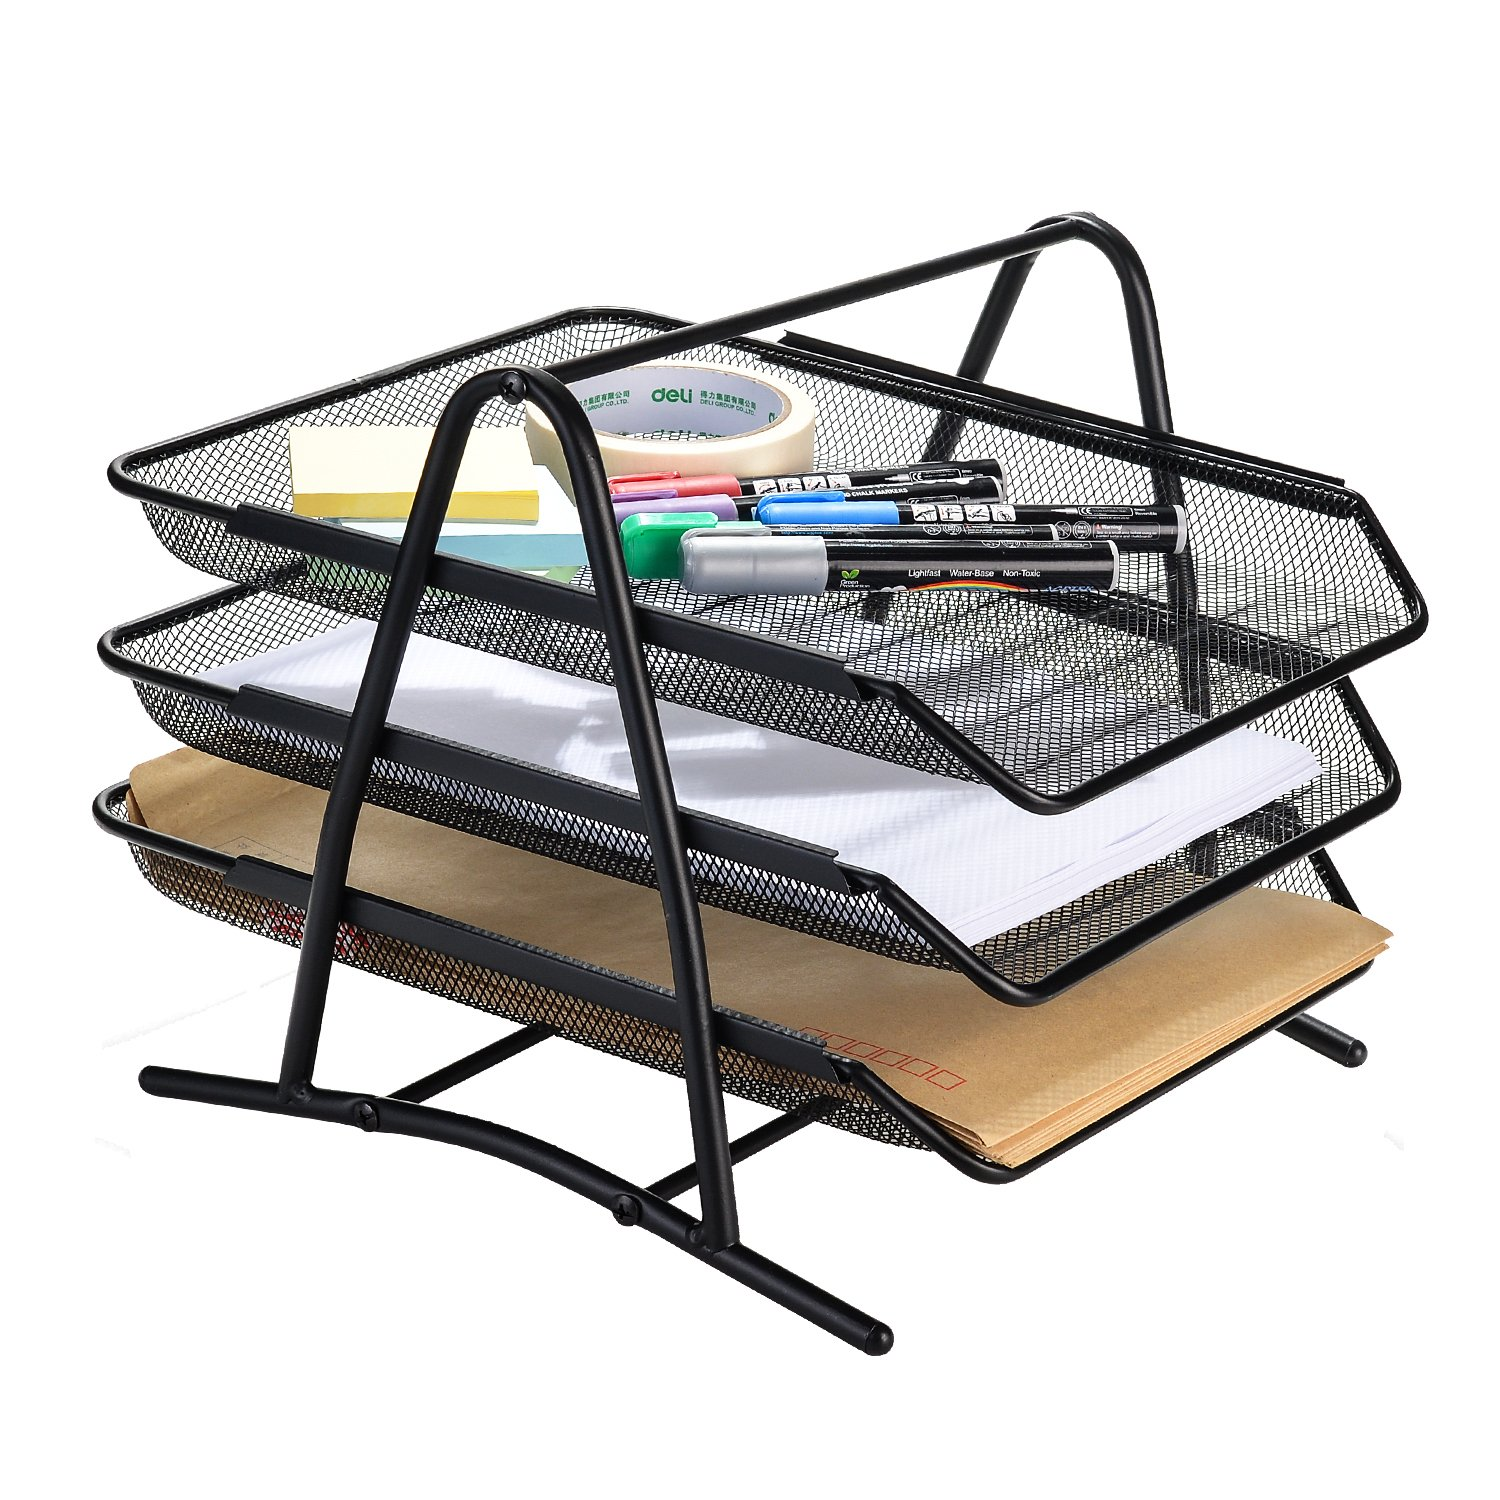 AGPtek Oval Desk Organizer,Metal Mesh Supply Caddy, 9 Space Saving Writing Supplies with Large Drawer for School, Study & Work Use - Black